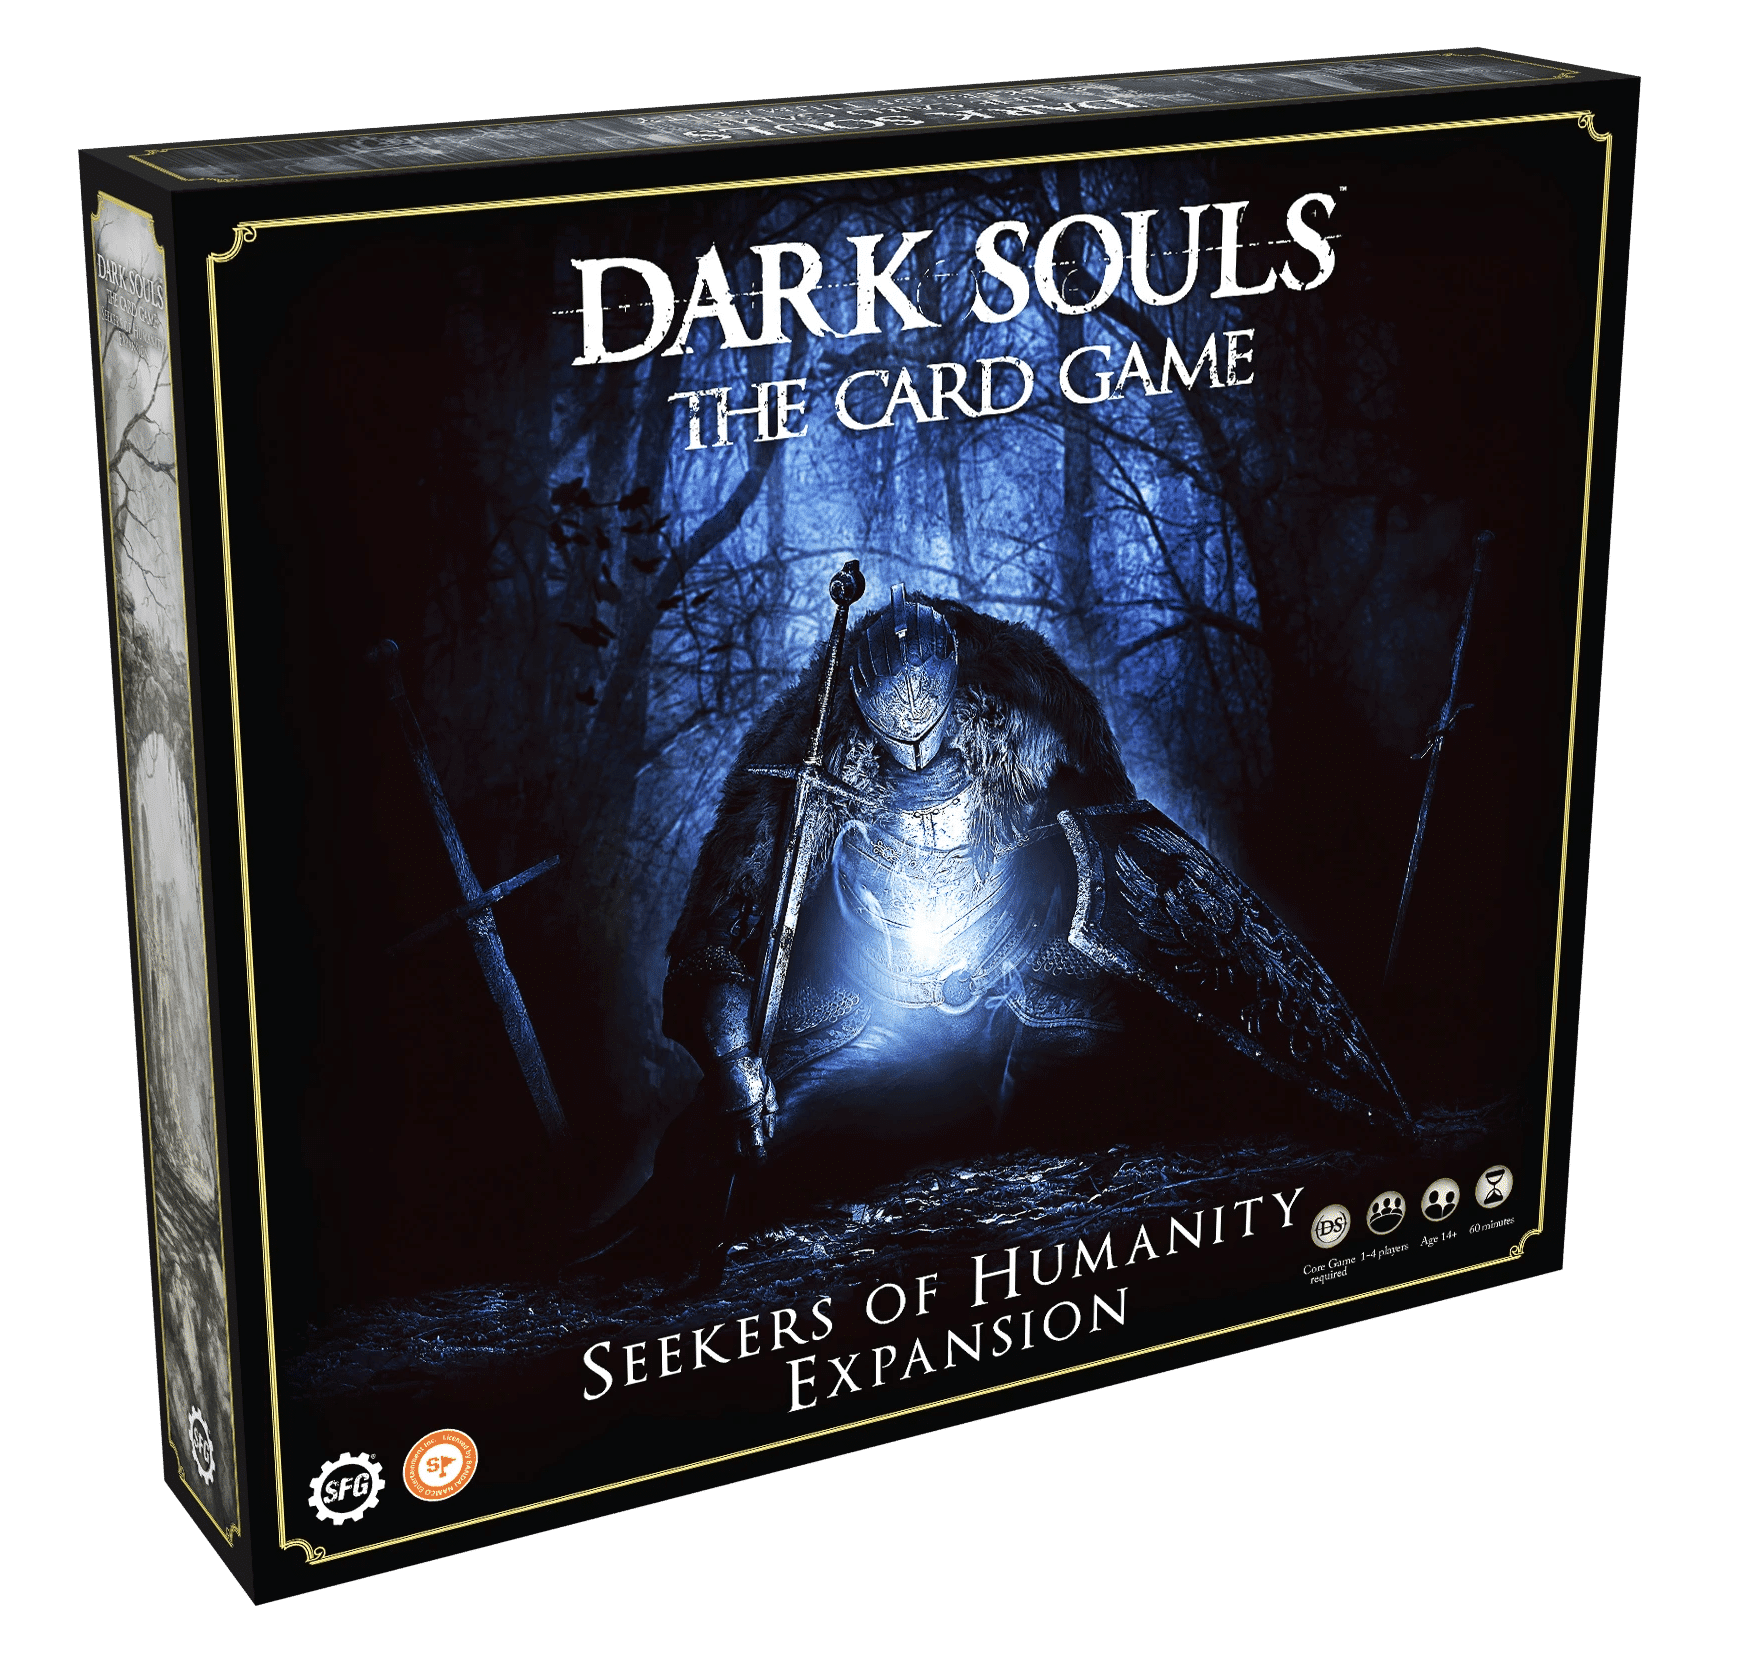 Dark Souls The Card Game Seekers of Humanity board game